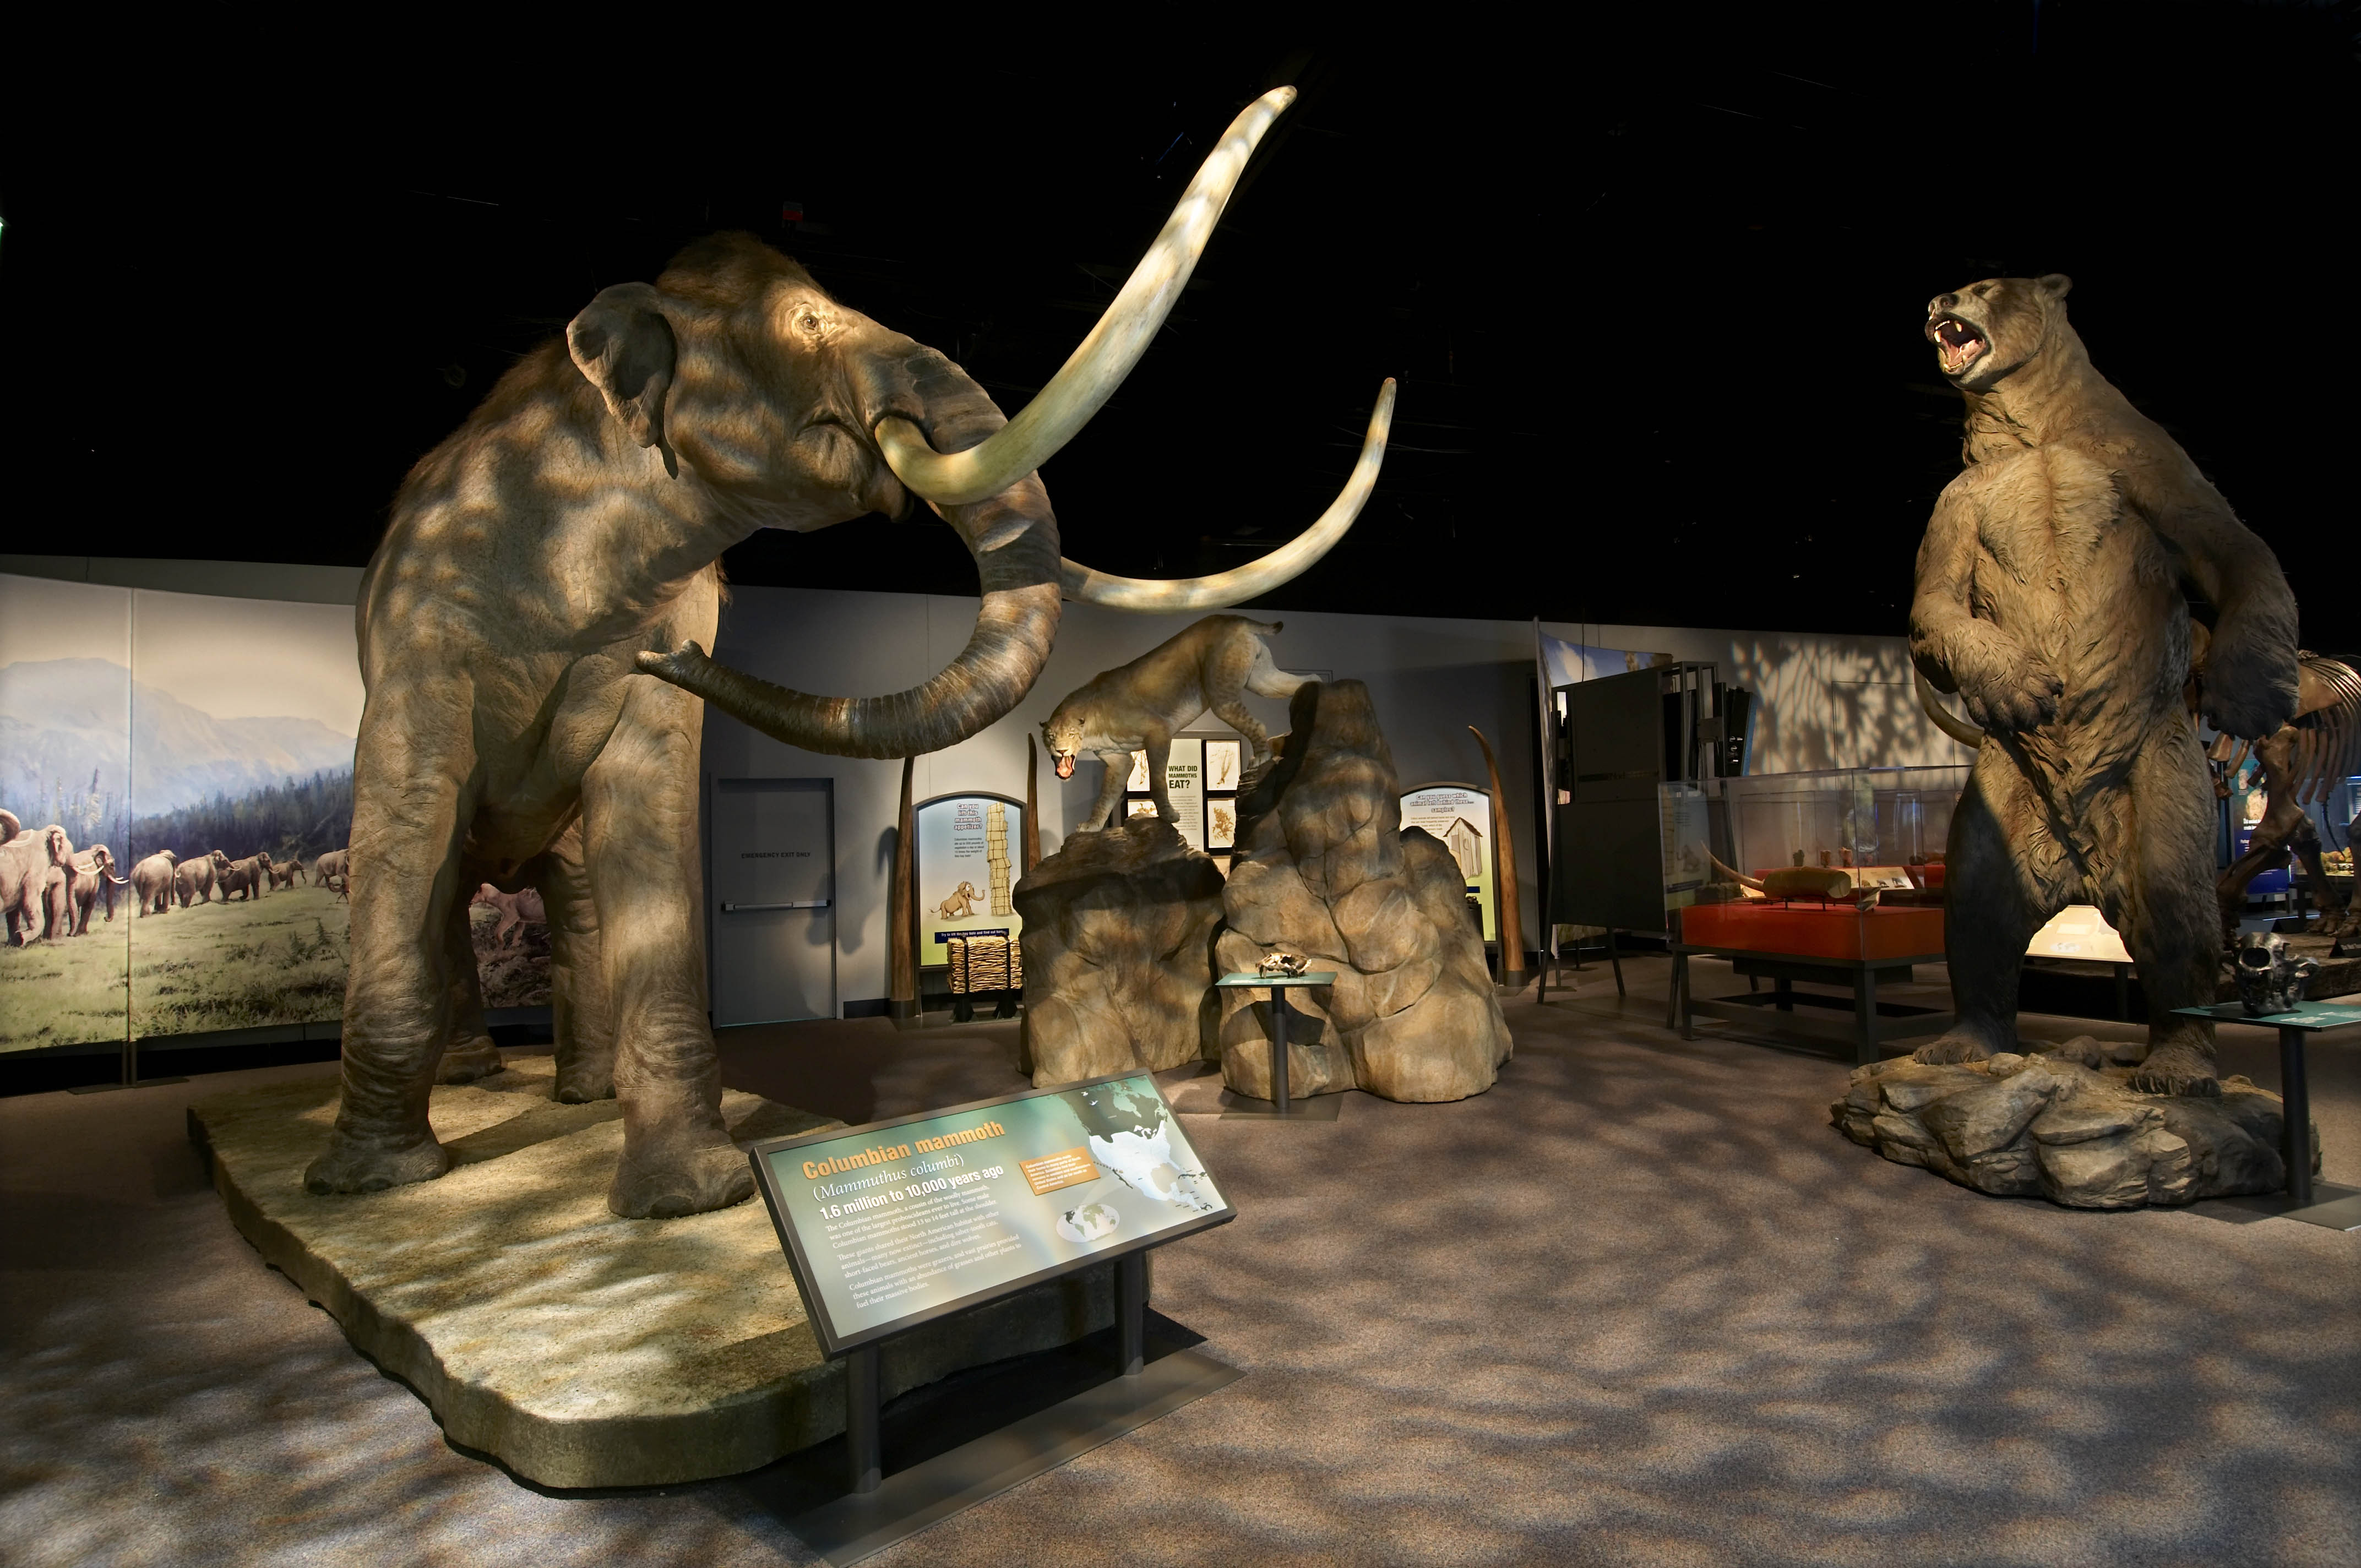 View of the Mammoths and Mastodons exhibition, including a live-size mammoth in the foreground.